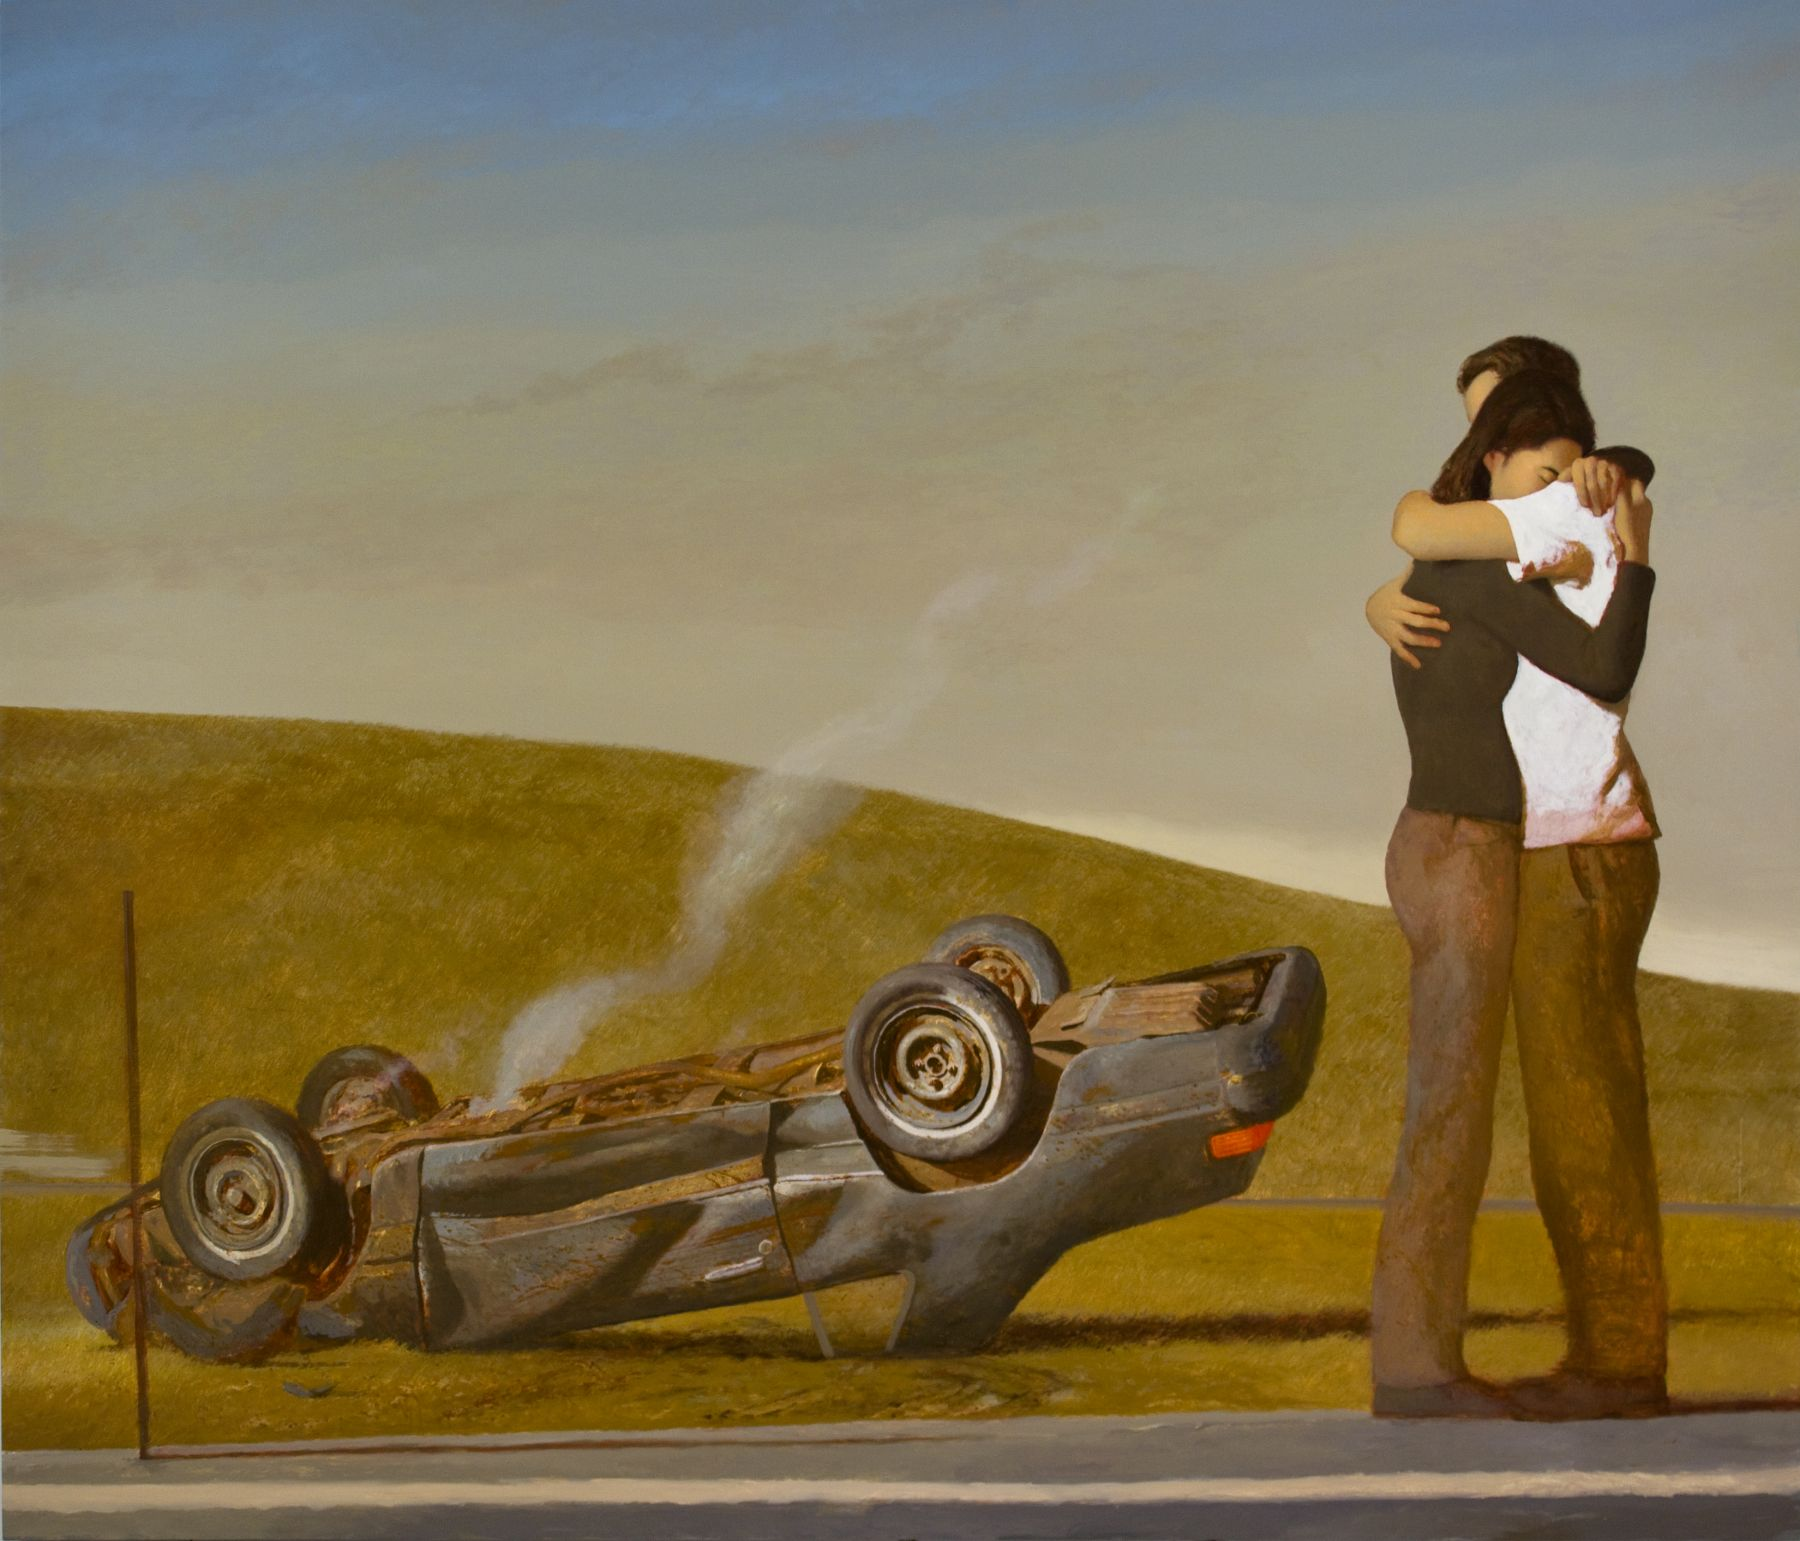 Bo Bartlett, A Miraculous Outcome, 2008, oil on linen, 76 x 90 inches